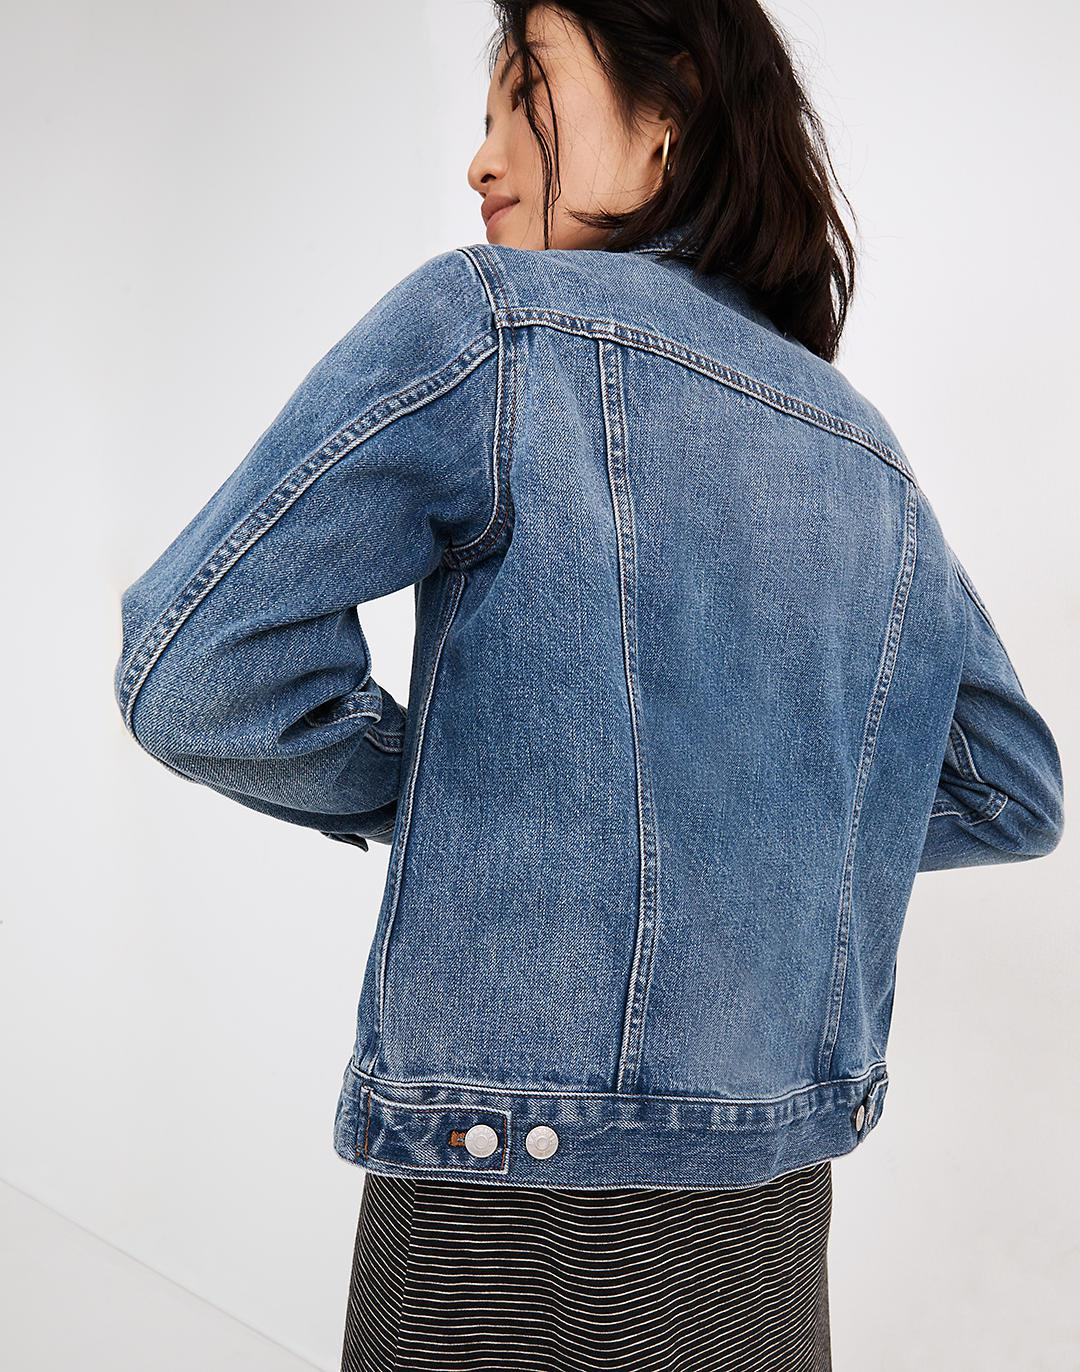 Mama Embroidered Jean Jacket in Medford Wash 2